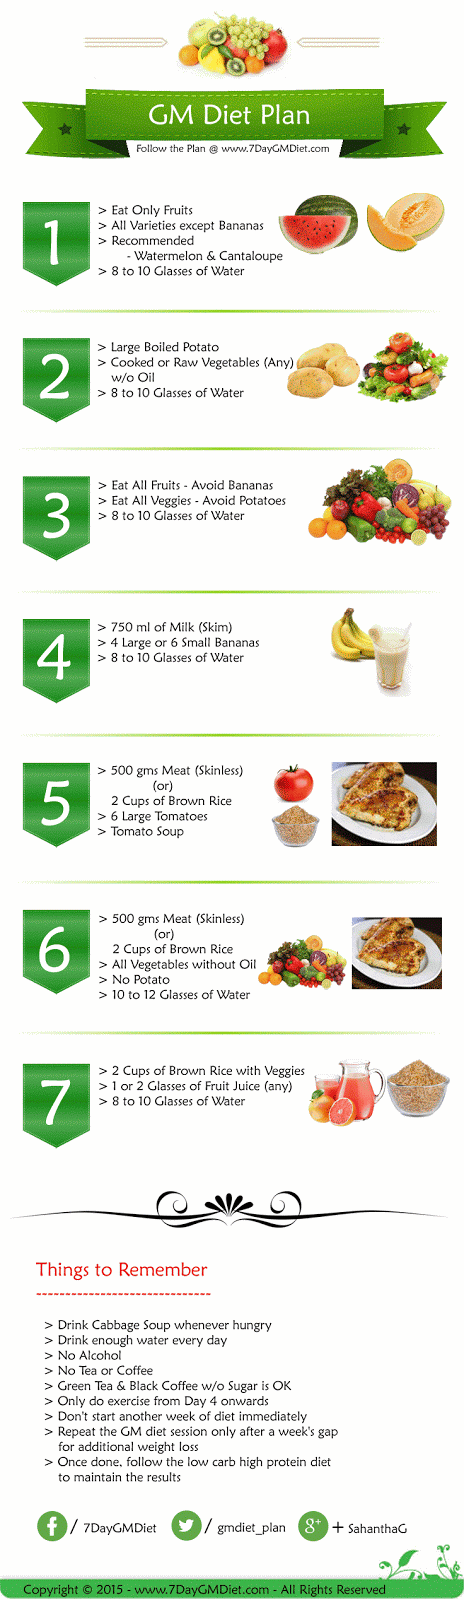 GM Diet Plan for Weight Loss: General Motors Diet Chart, 7 Days Menu